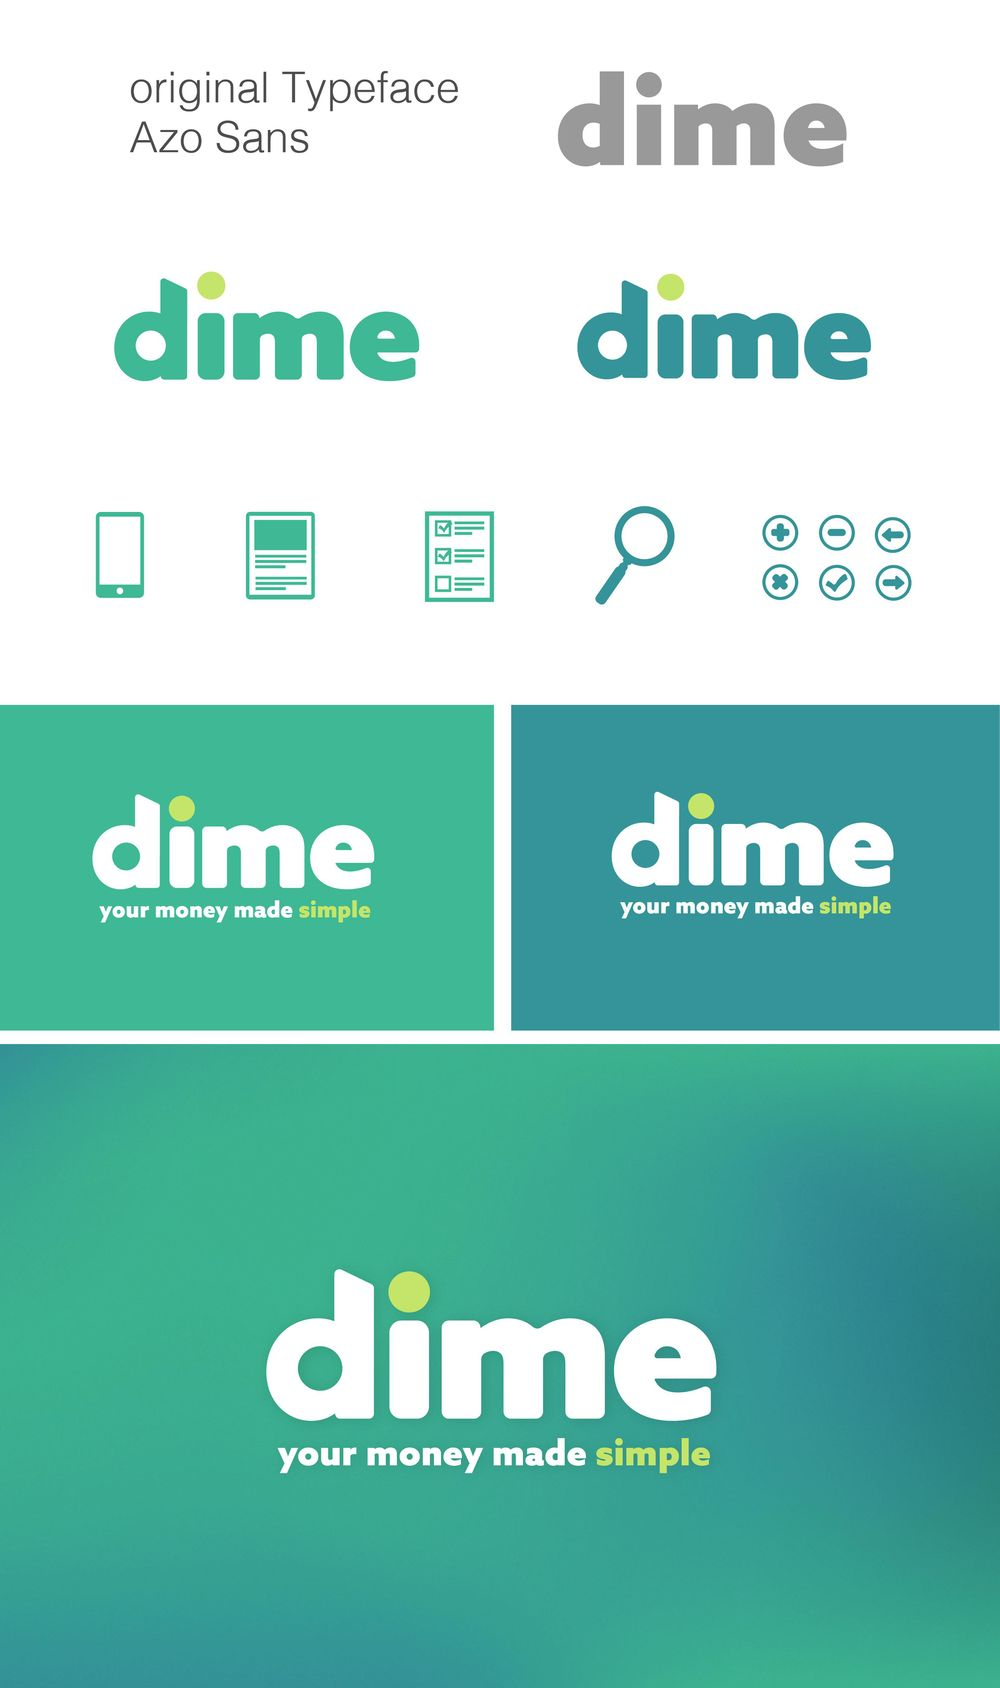 Mobile App Design and Wireframe - image 2 - student project